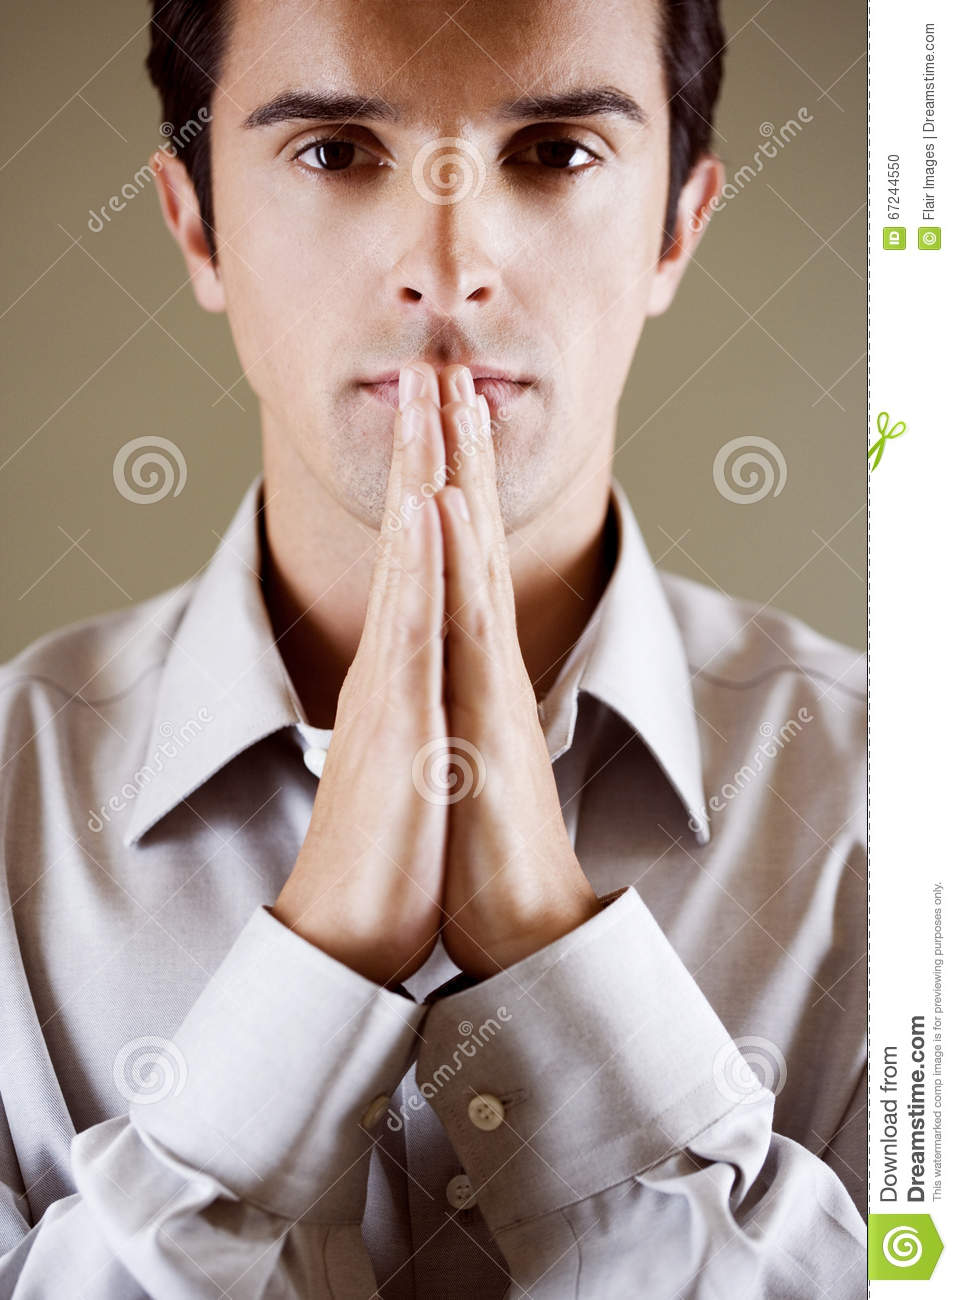 Portrait of a man with his hands in a praying position